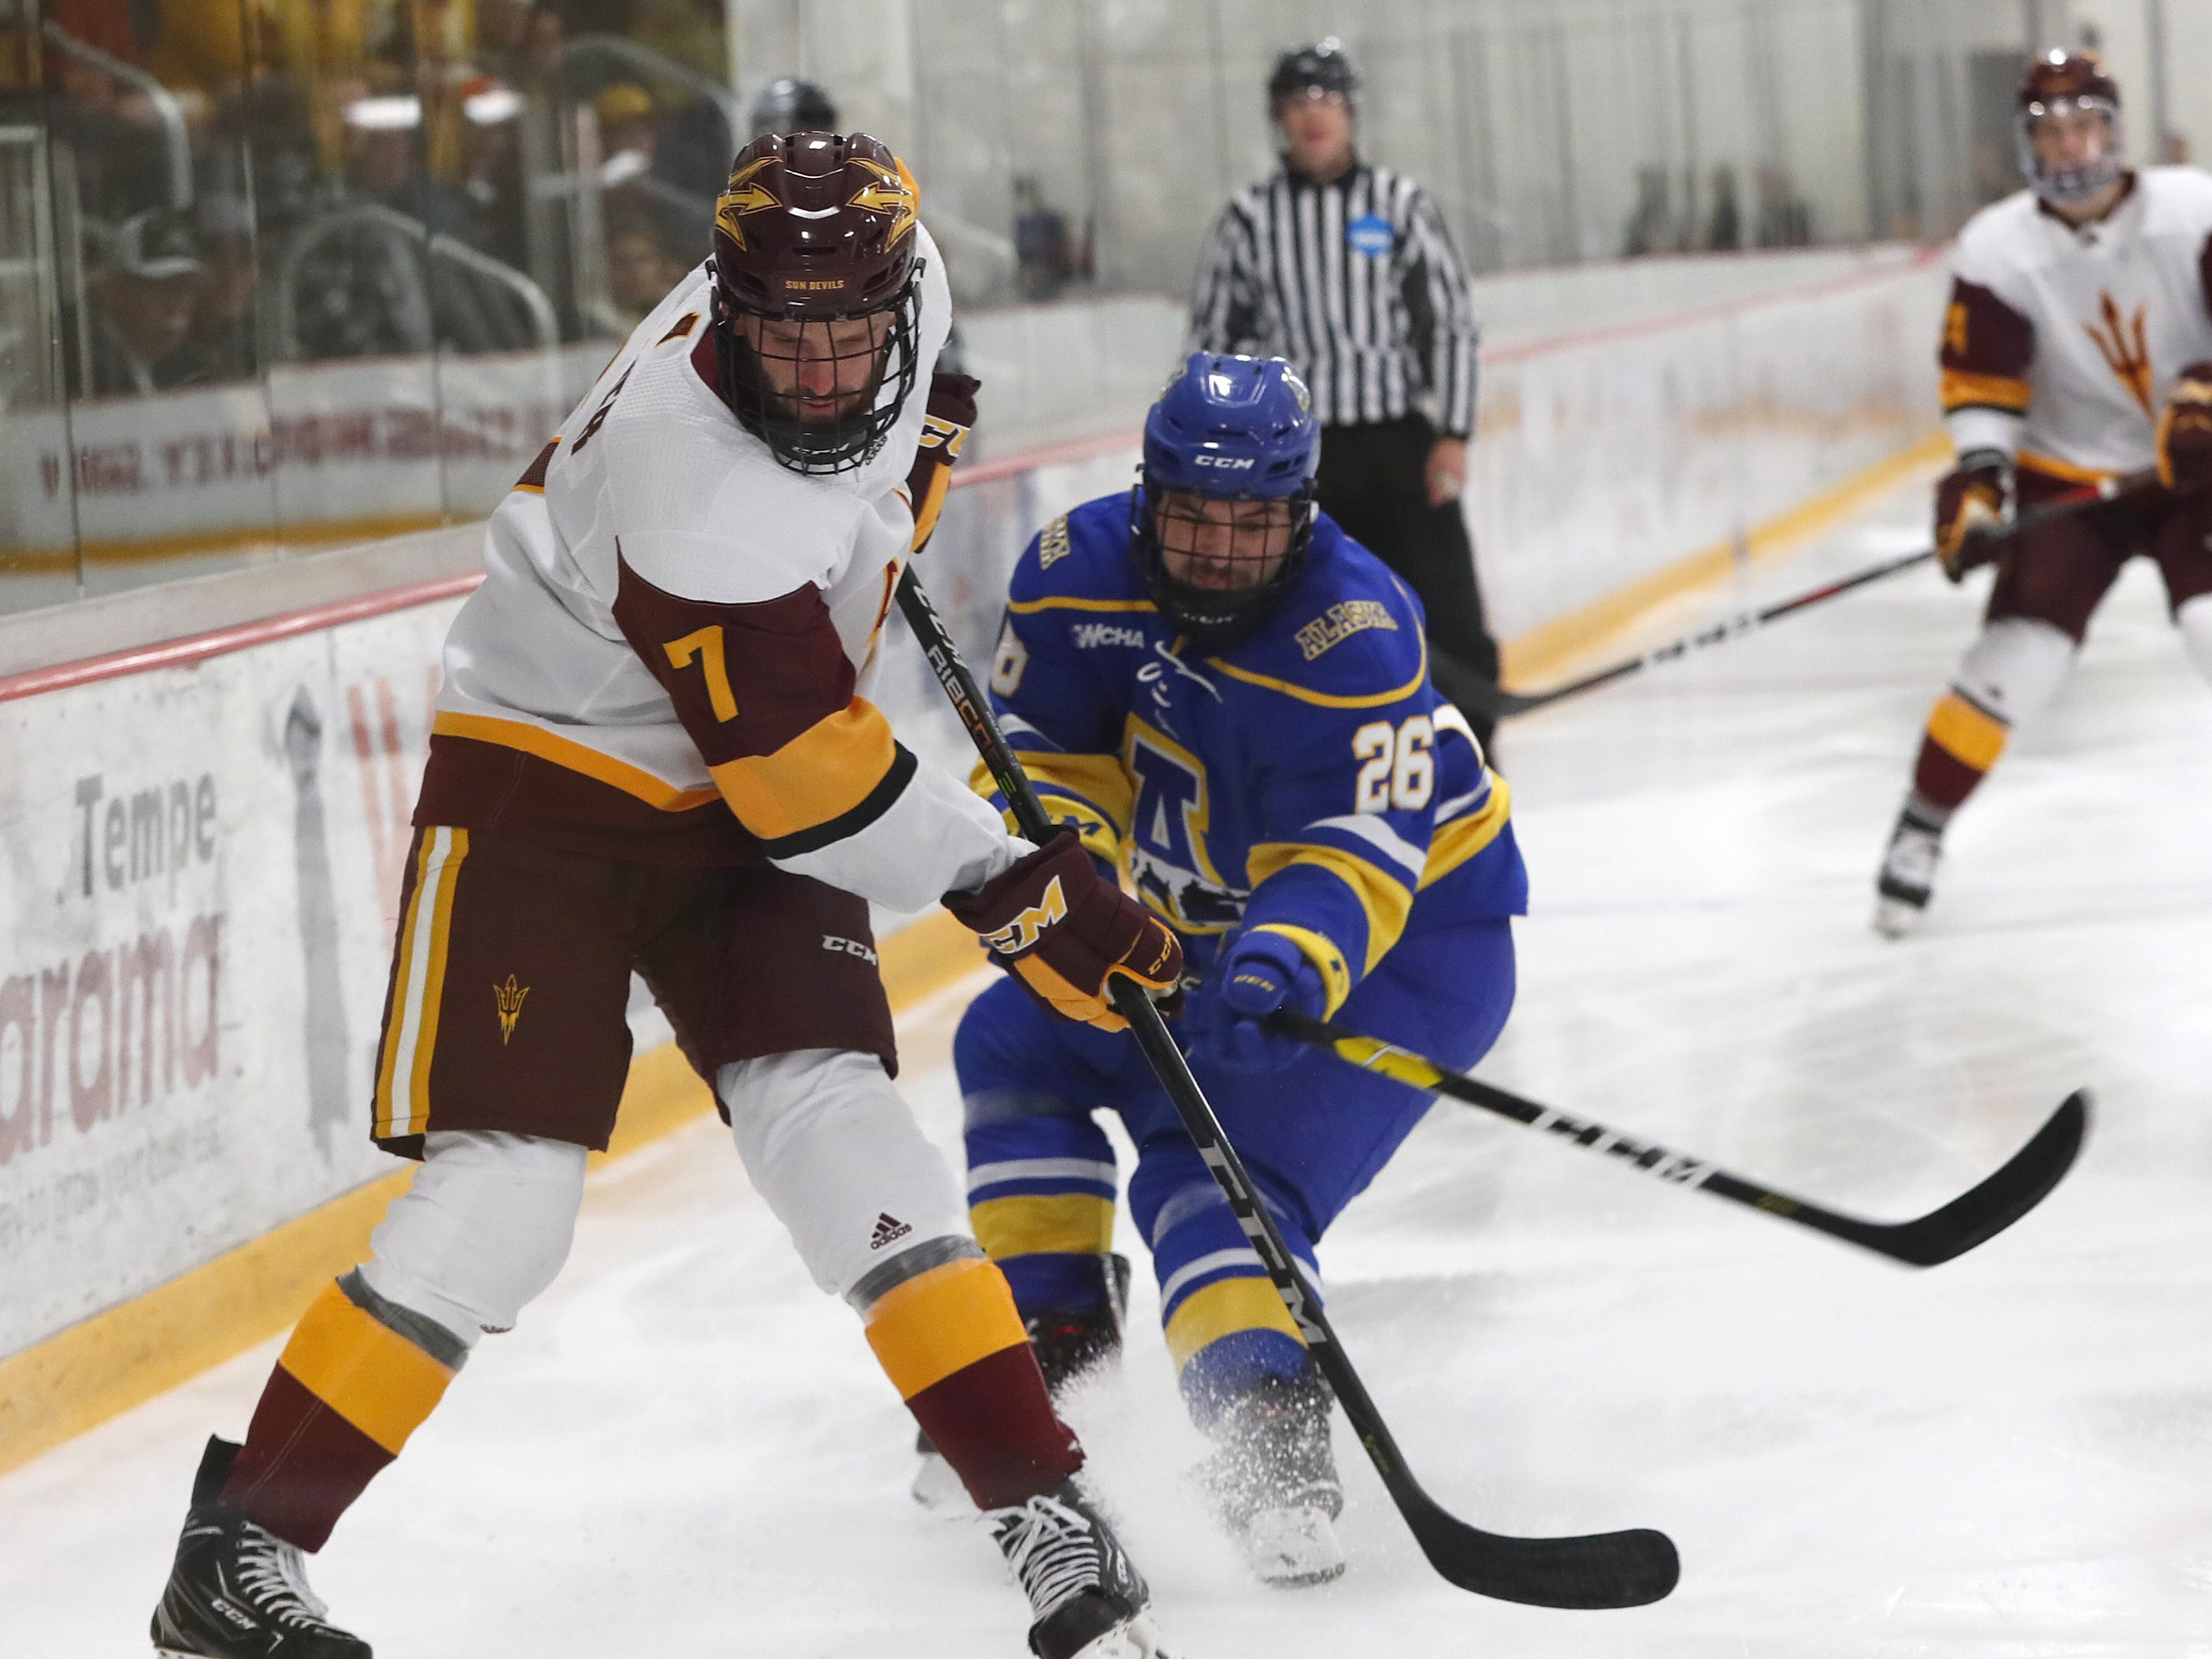 ASU's Johnny Walker (7) passes the puck against Alaska's Tyler Cline (26) at Oceanside Ice Arena in Tempe, Ariz. on October 7, 2018.